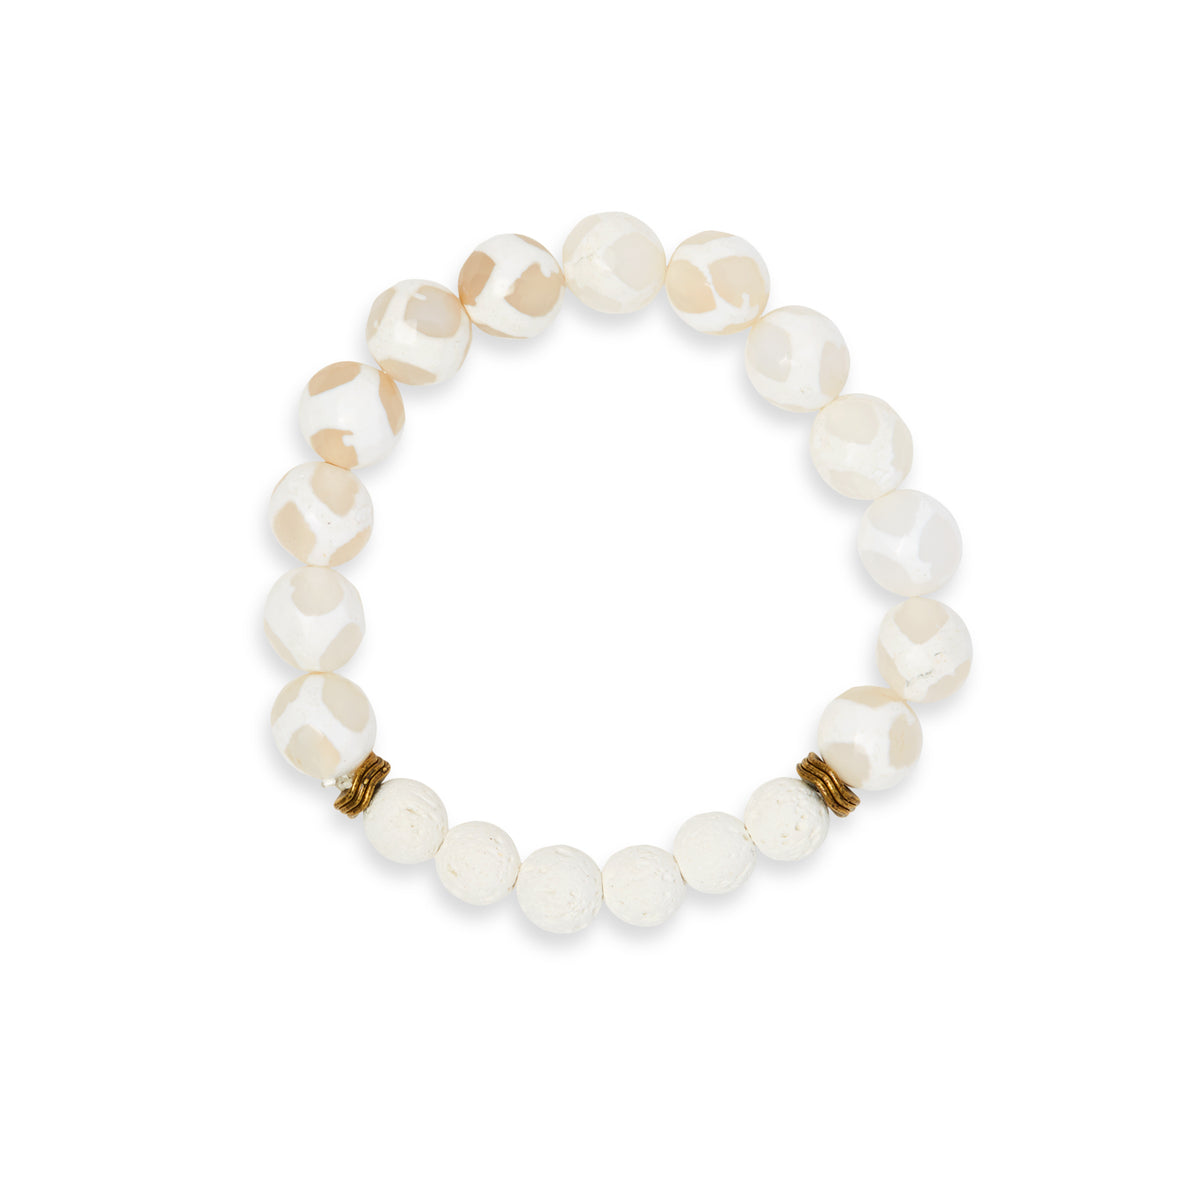 Blanco Essential Oil Bracelet